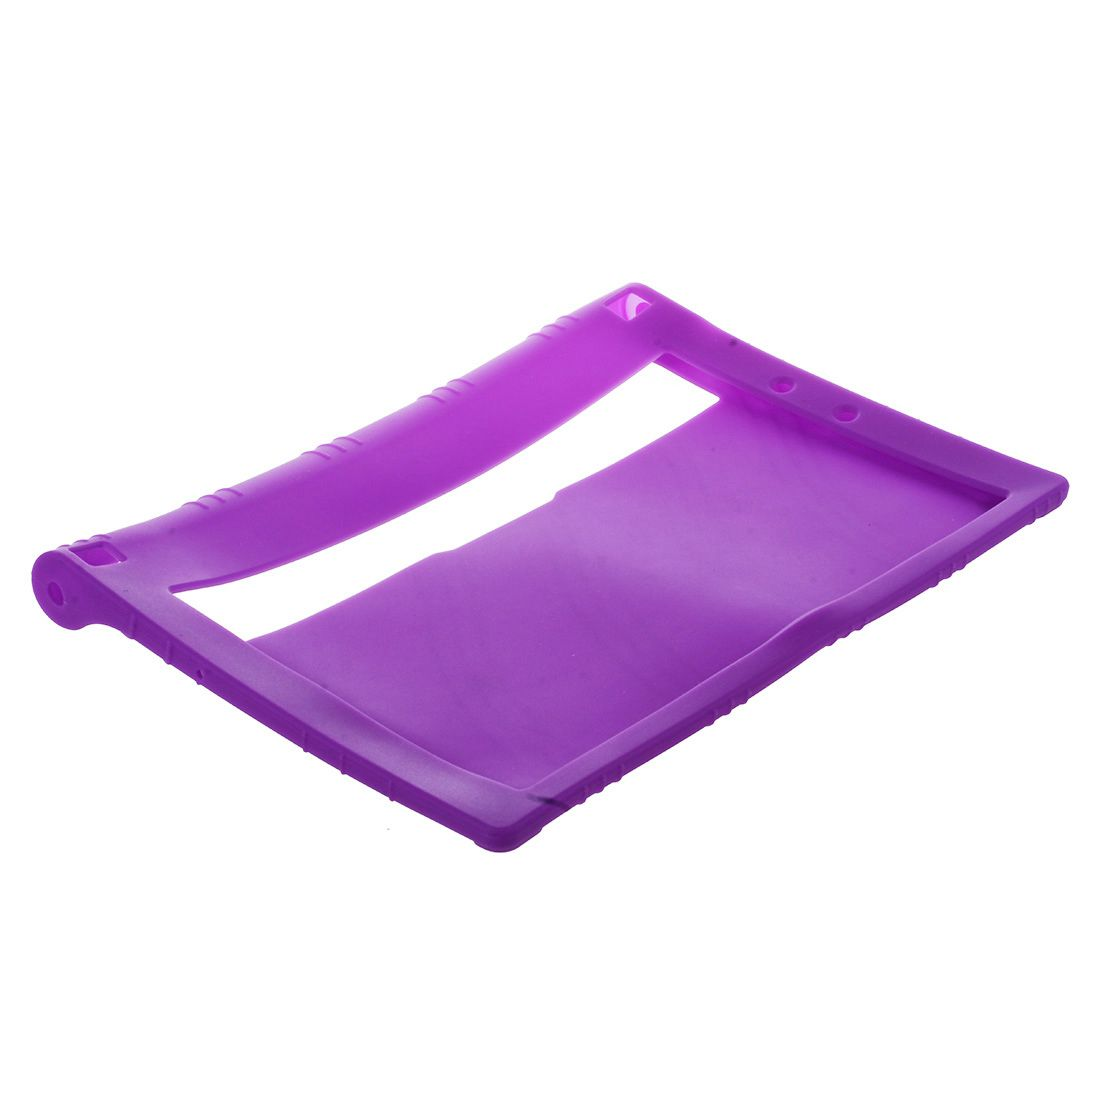 Galleria fotografica TPU Silicone Gel Rubber Case Cover For 10.1'' inch Lenovo Yoga Tablet 2 1050F PURPLE